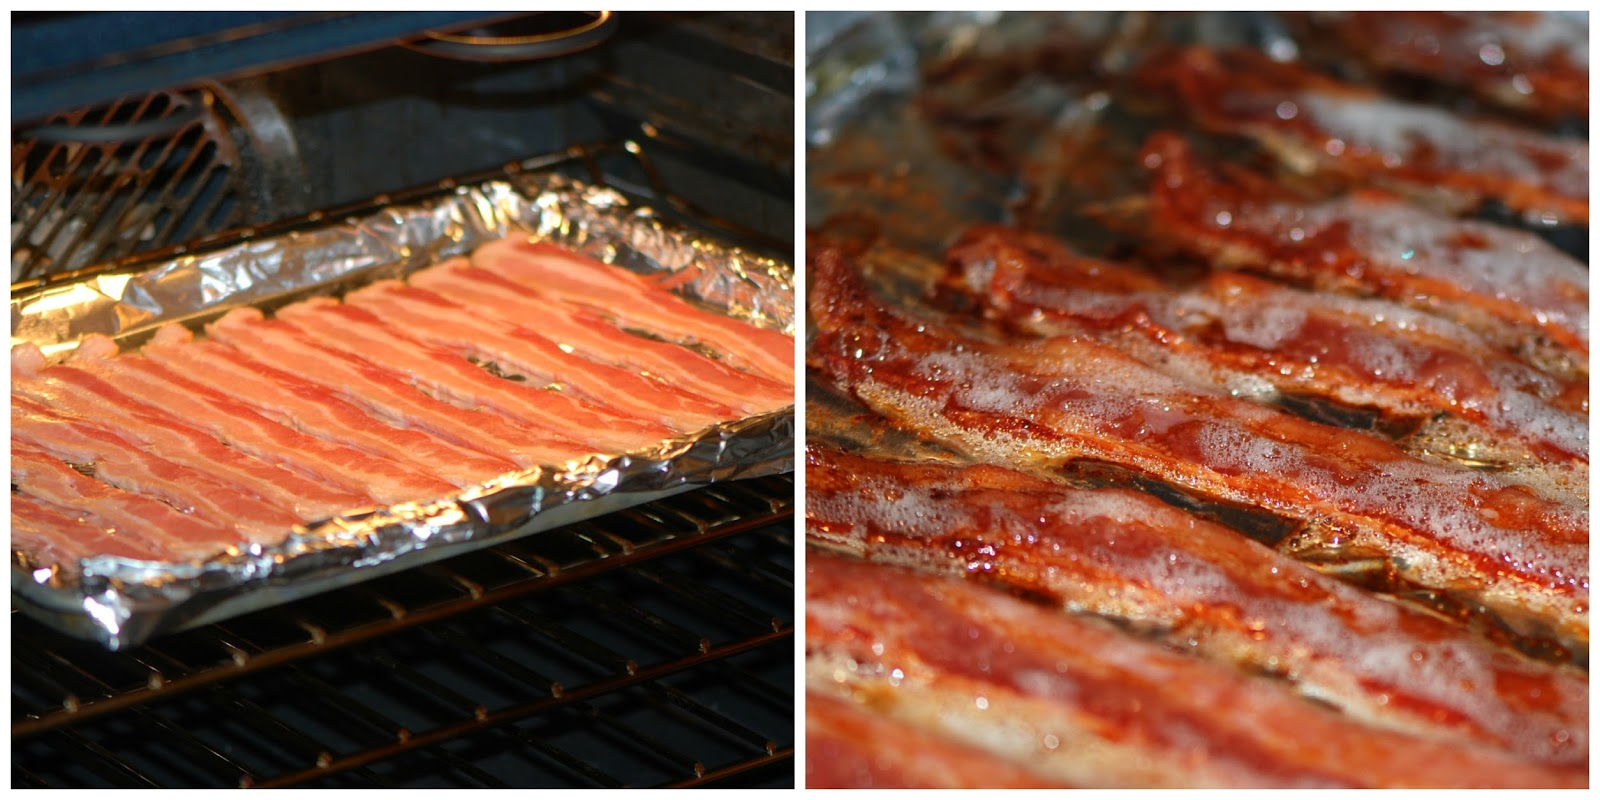 Baking In The Oven Is My Favorite Way To Cook Bacon '�  You Can Also